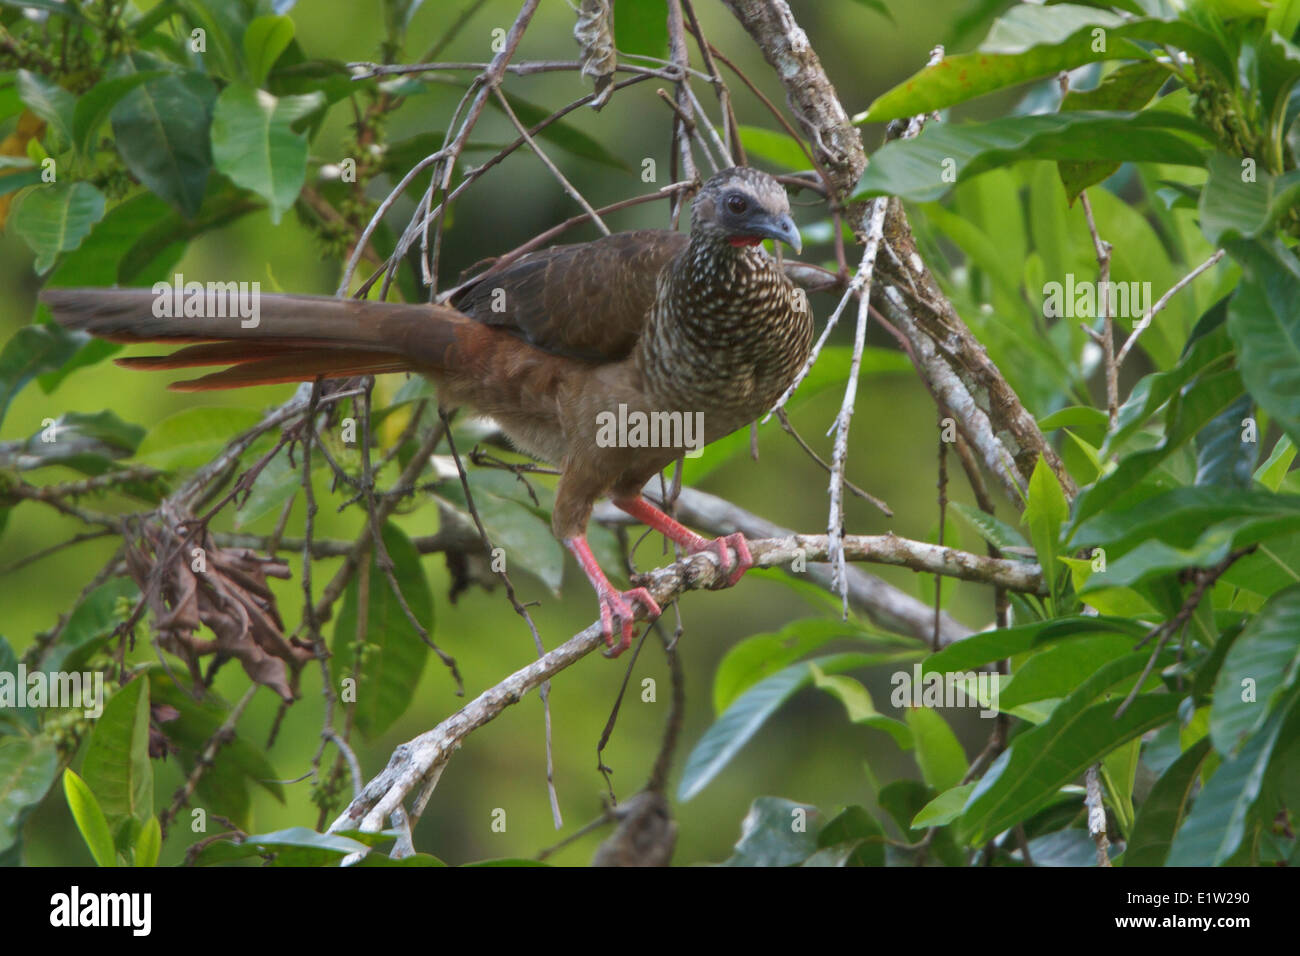 Speckled Chachalaca (Ortalis guttata) perched on a branch in Peru. - Stock Image